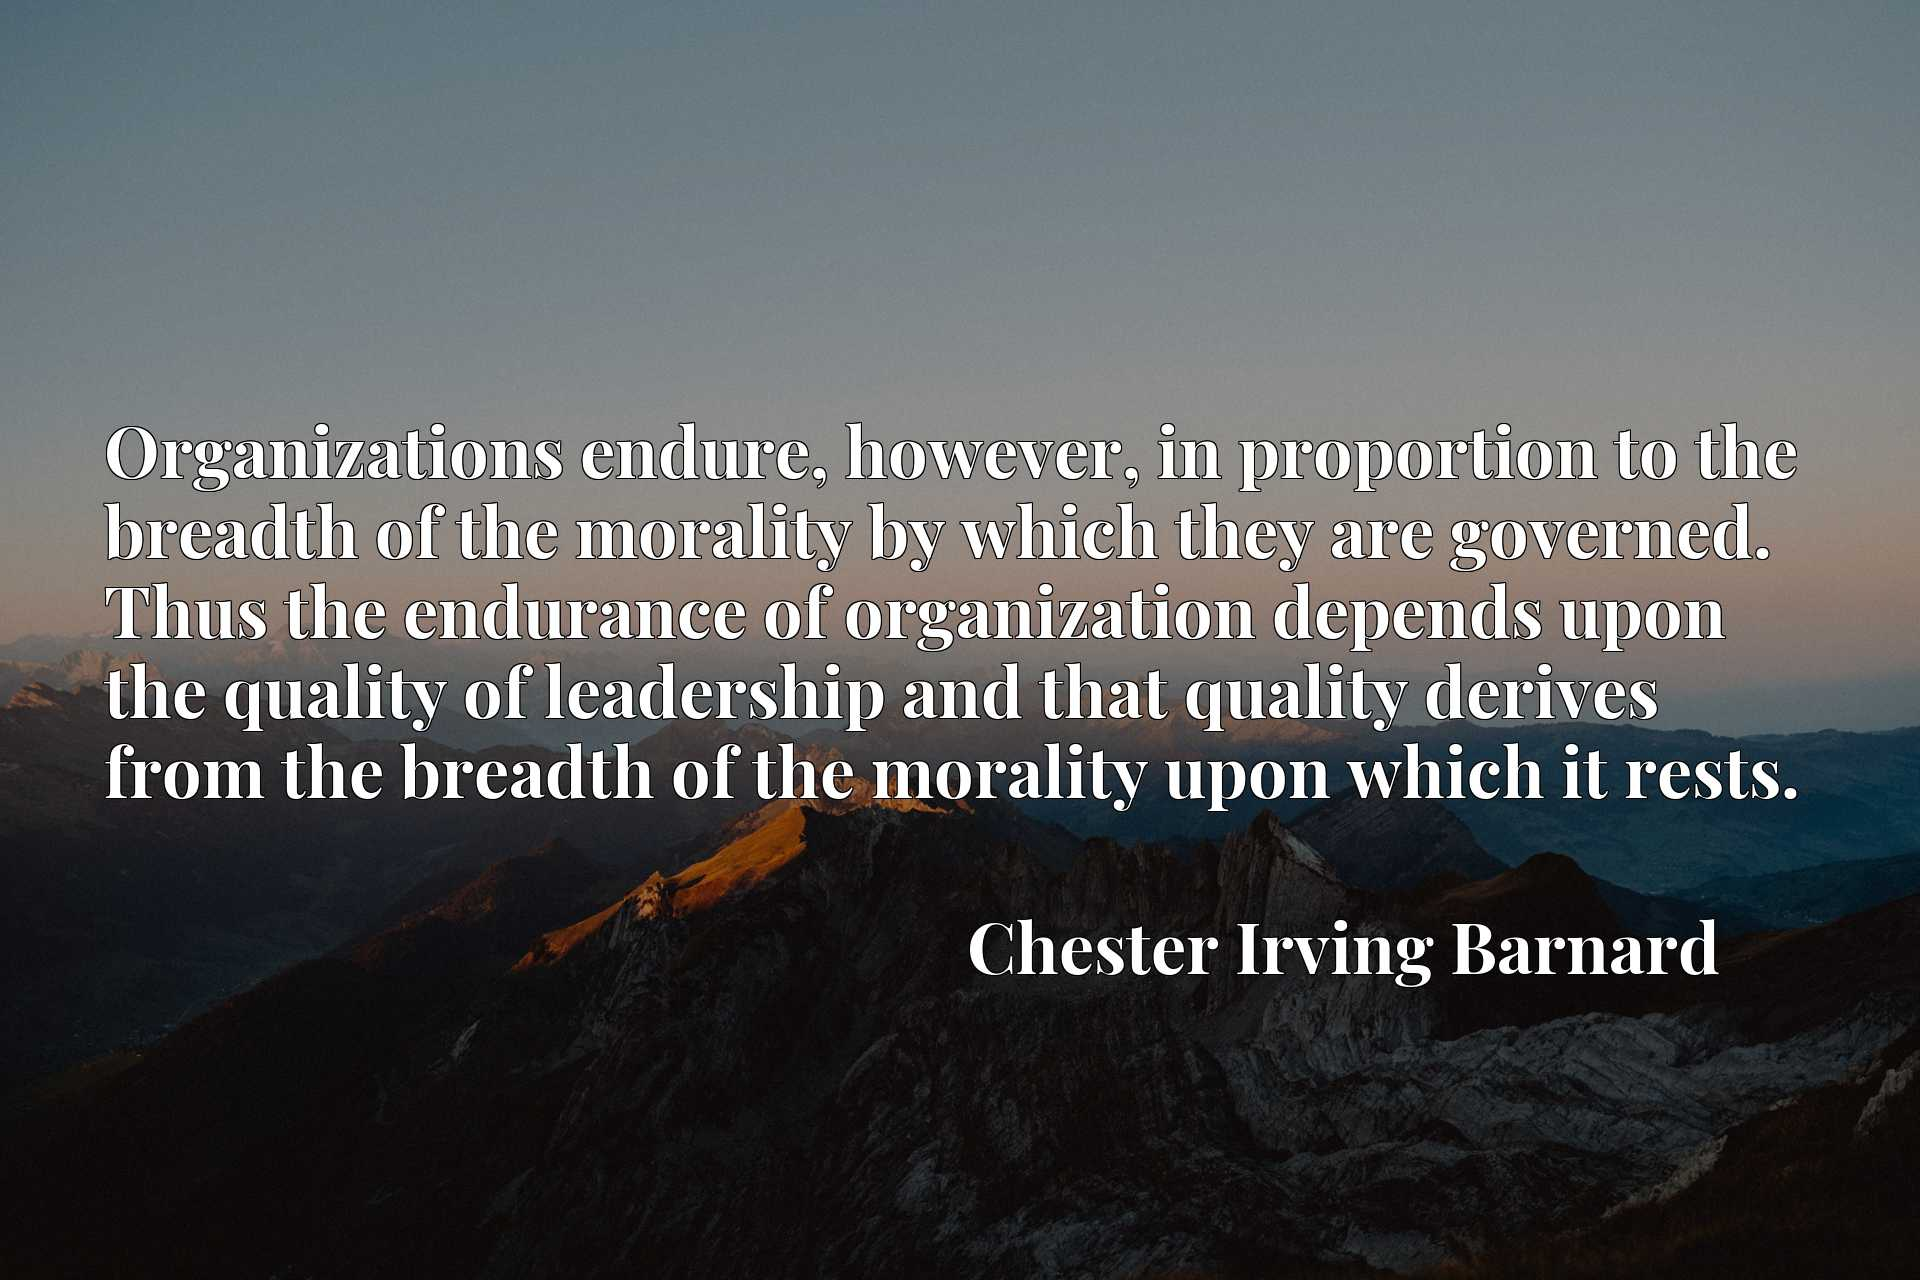 Organizations endure, however, in proportion to the breadth of the morality by which they are governed. Thus the endurance of organization depends upon the quality of leadership and that quality derives from the breadth of the morality upon which it rests.